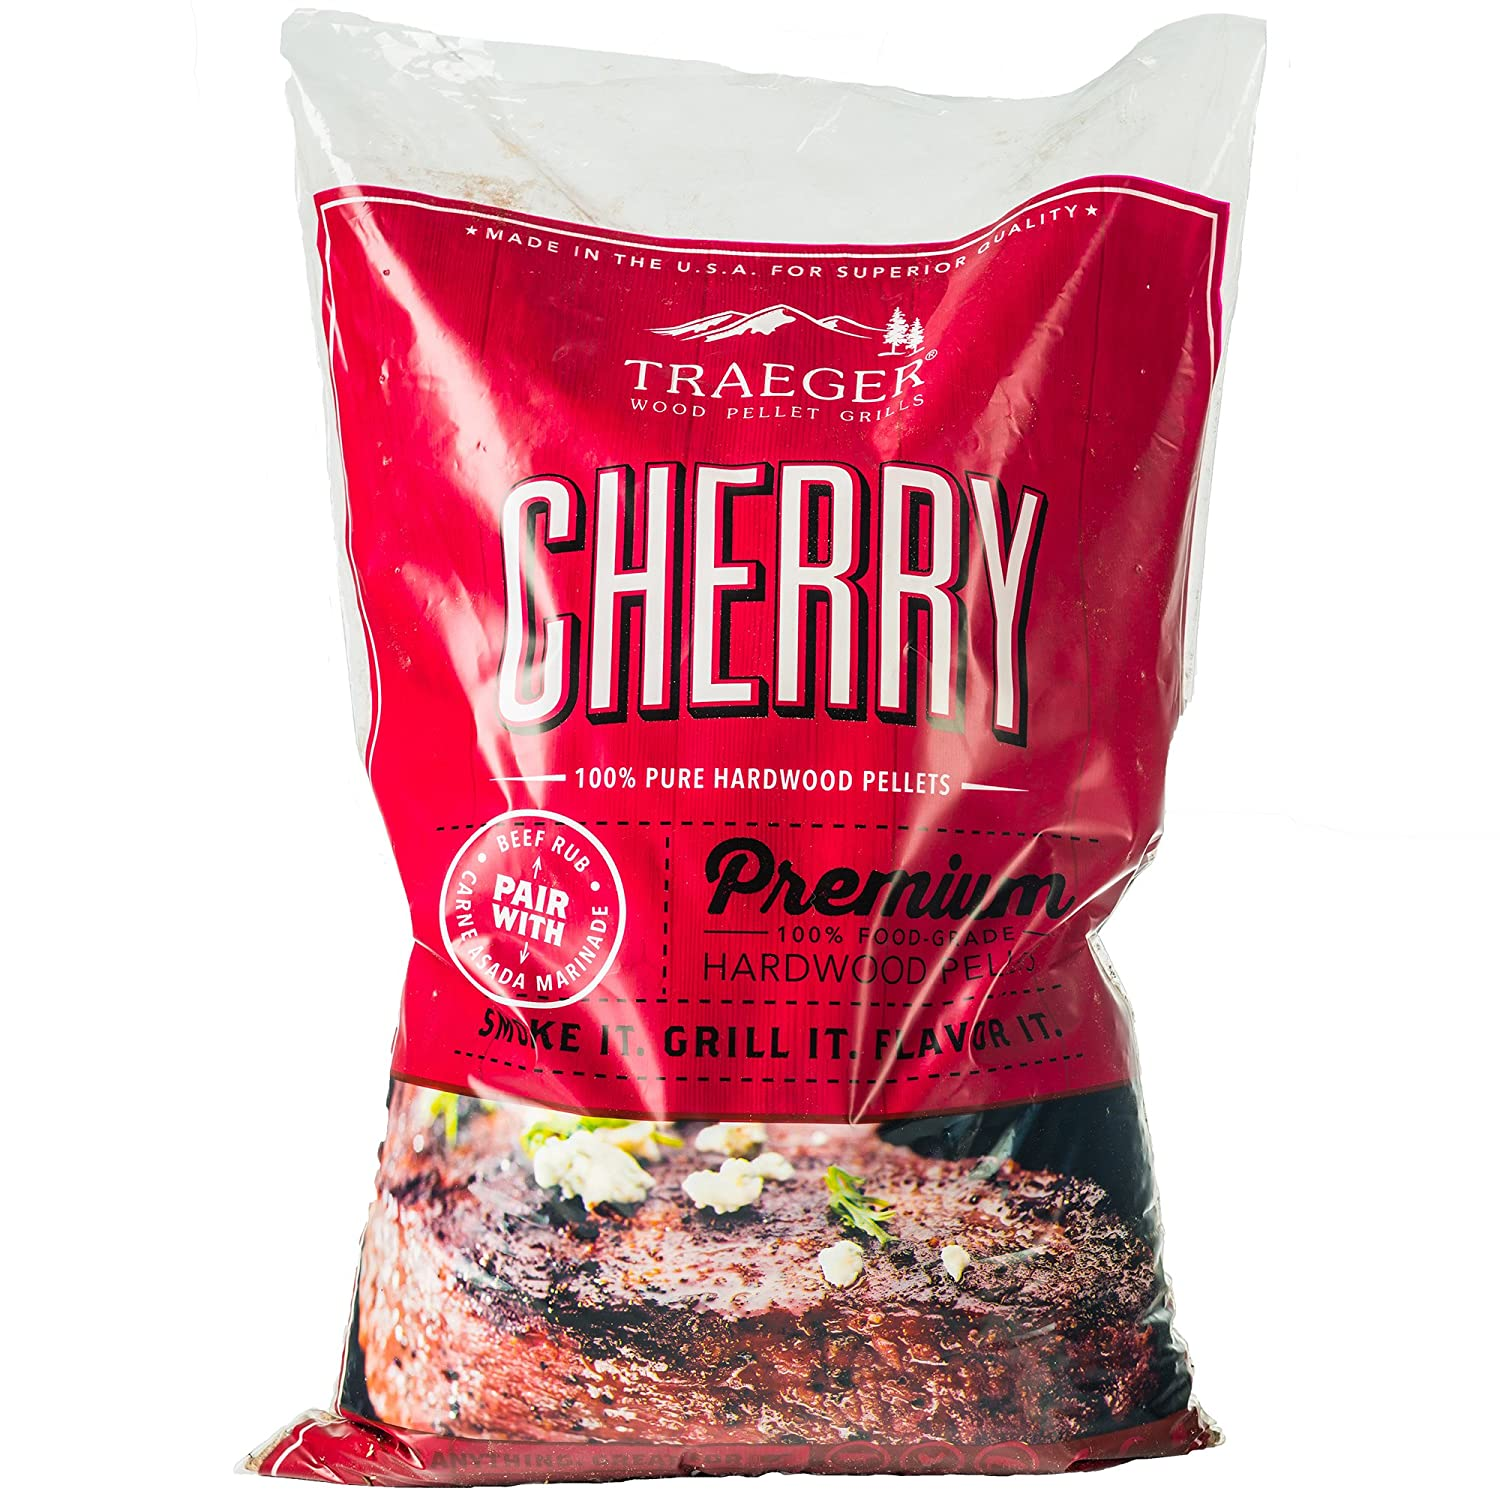 Traeger PEL309 Cherry Barbecue Pellets, 20-Pound